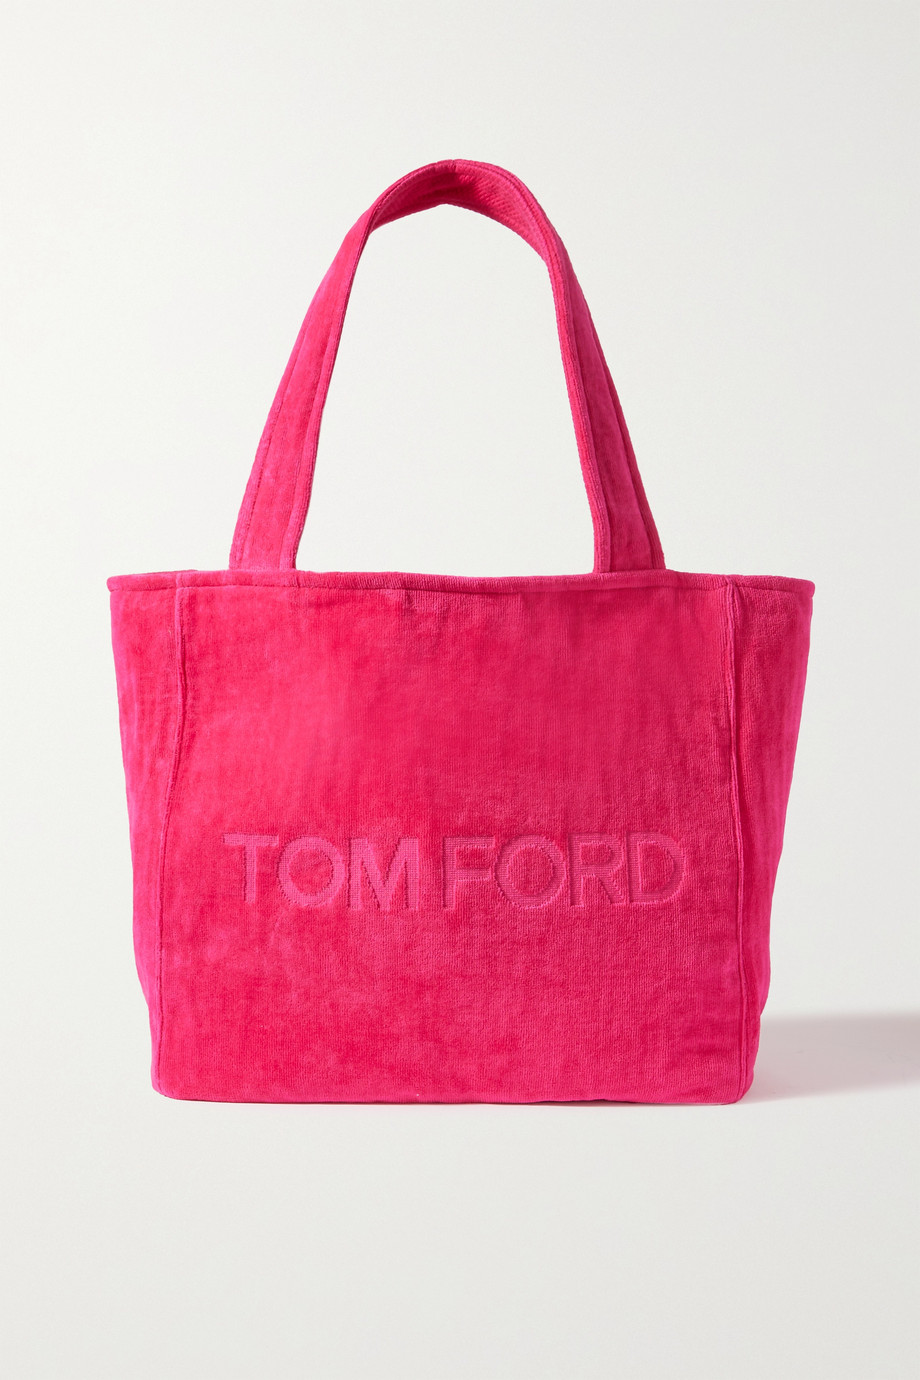 TOM FORD TF Shopper mittelgroße Tote aus Frottee